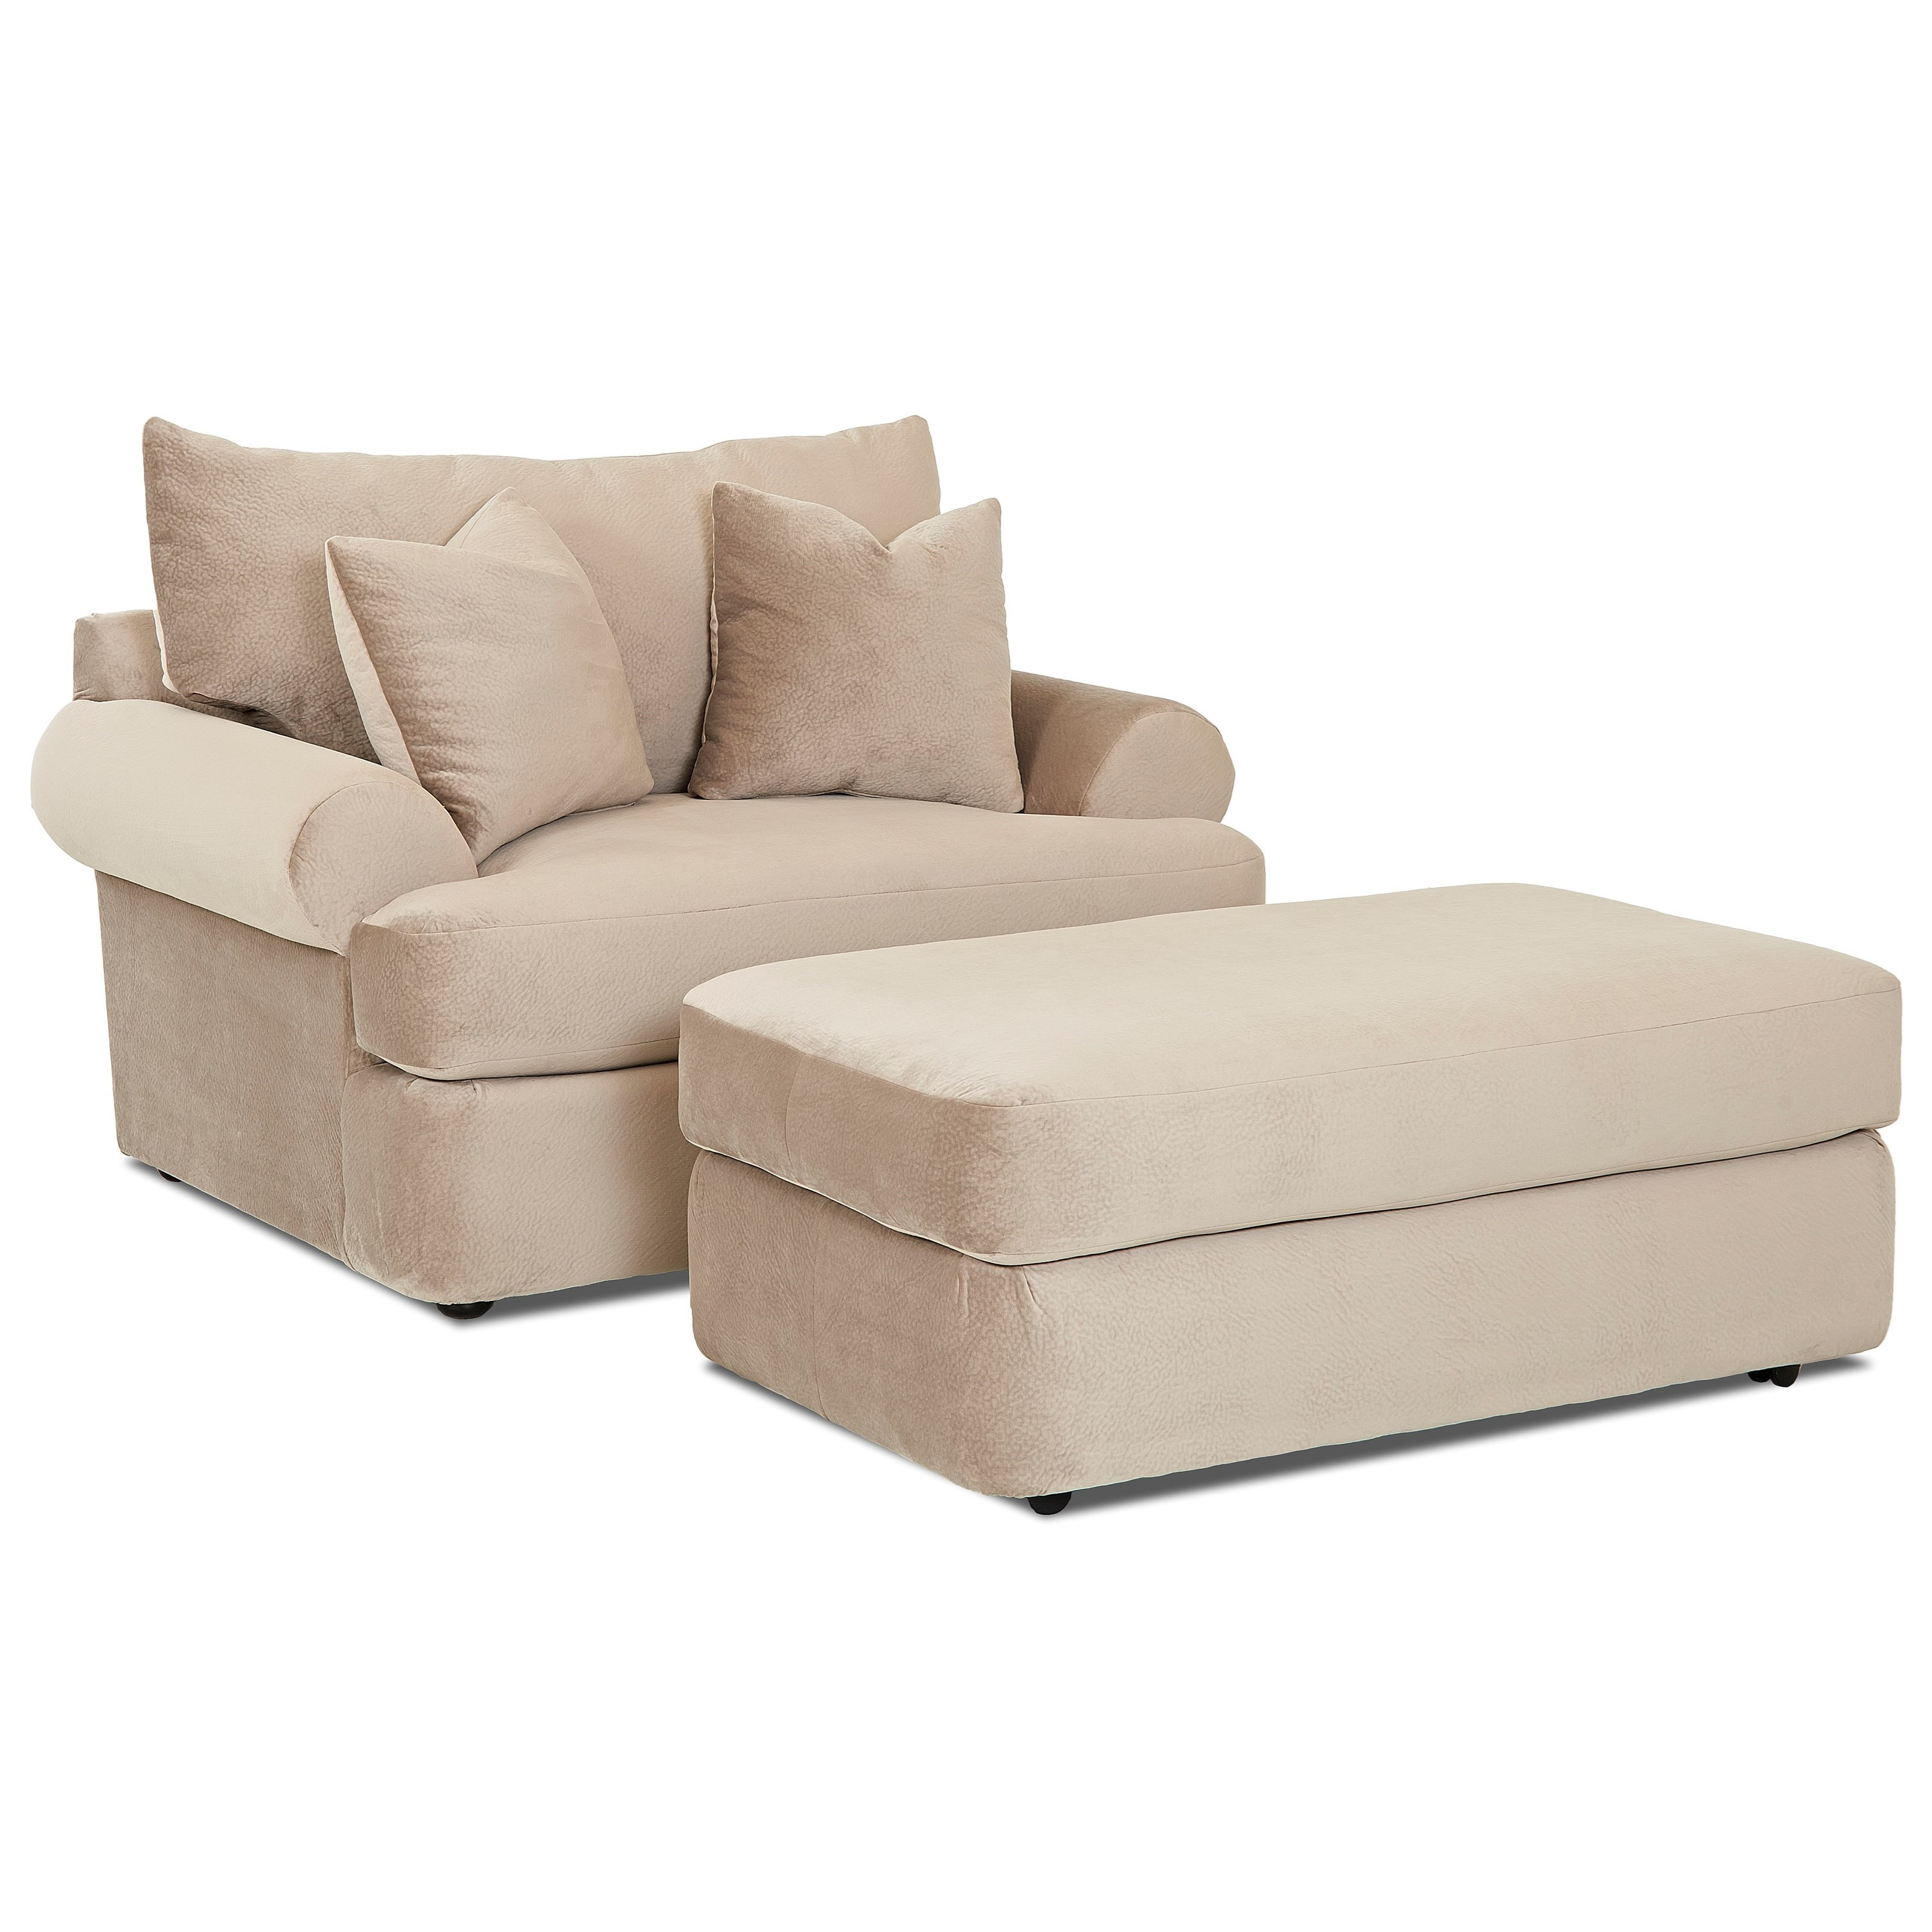 Casual Oversized Chair and Ottoman Set